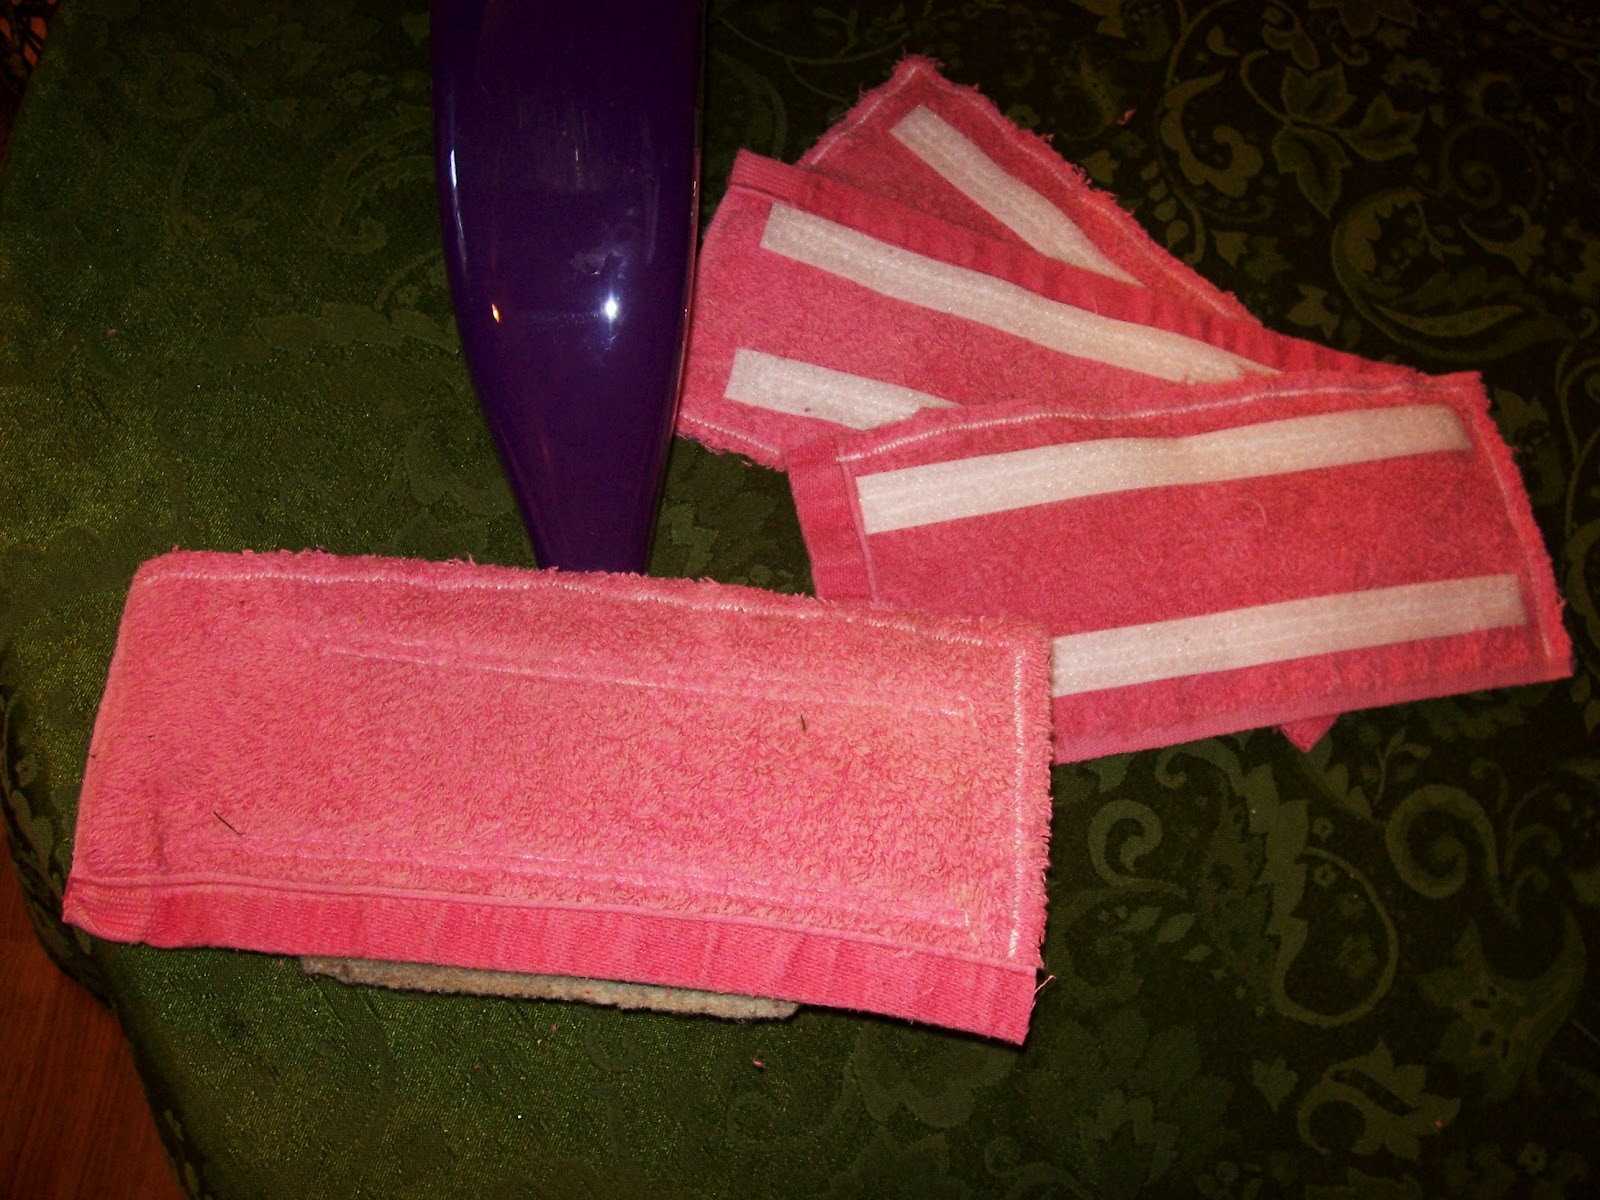 Perfection Made Simple Homemade Cloth Swiffer Wet Jet Pads